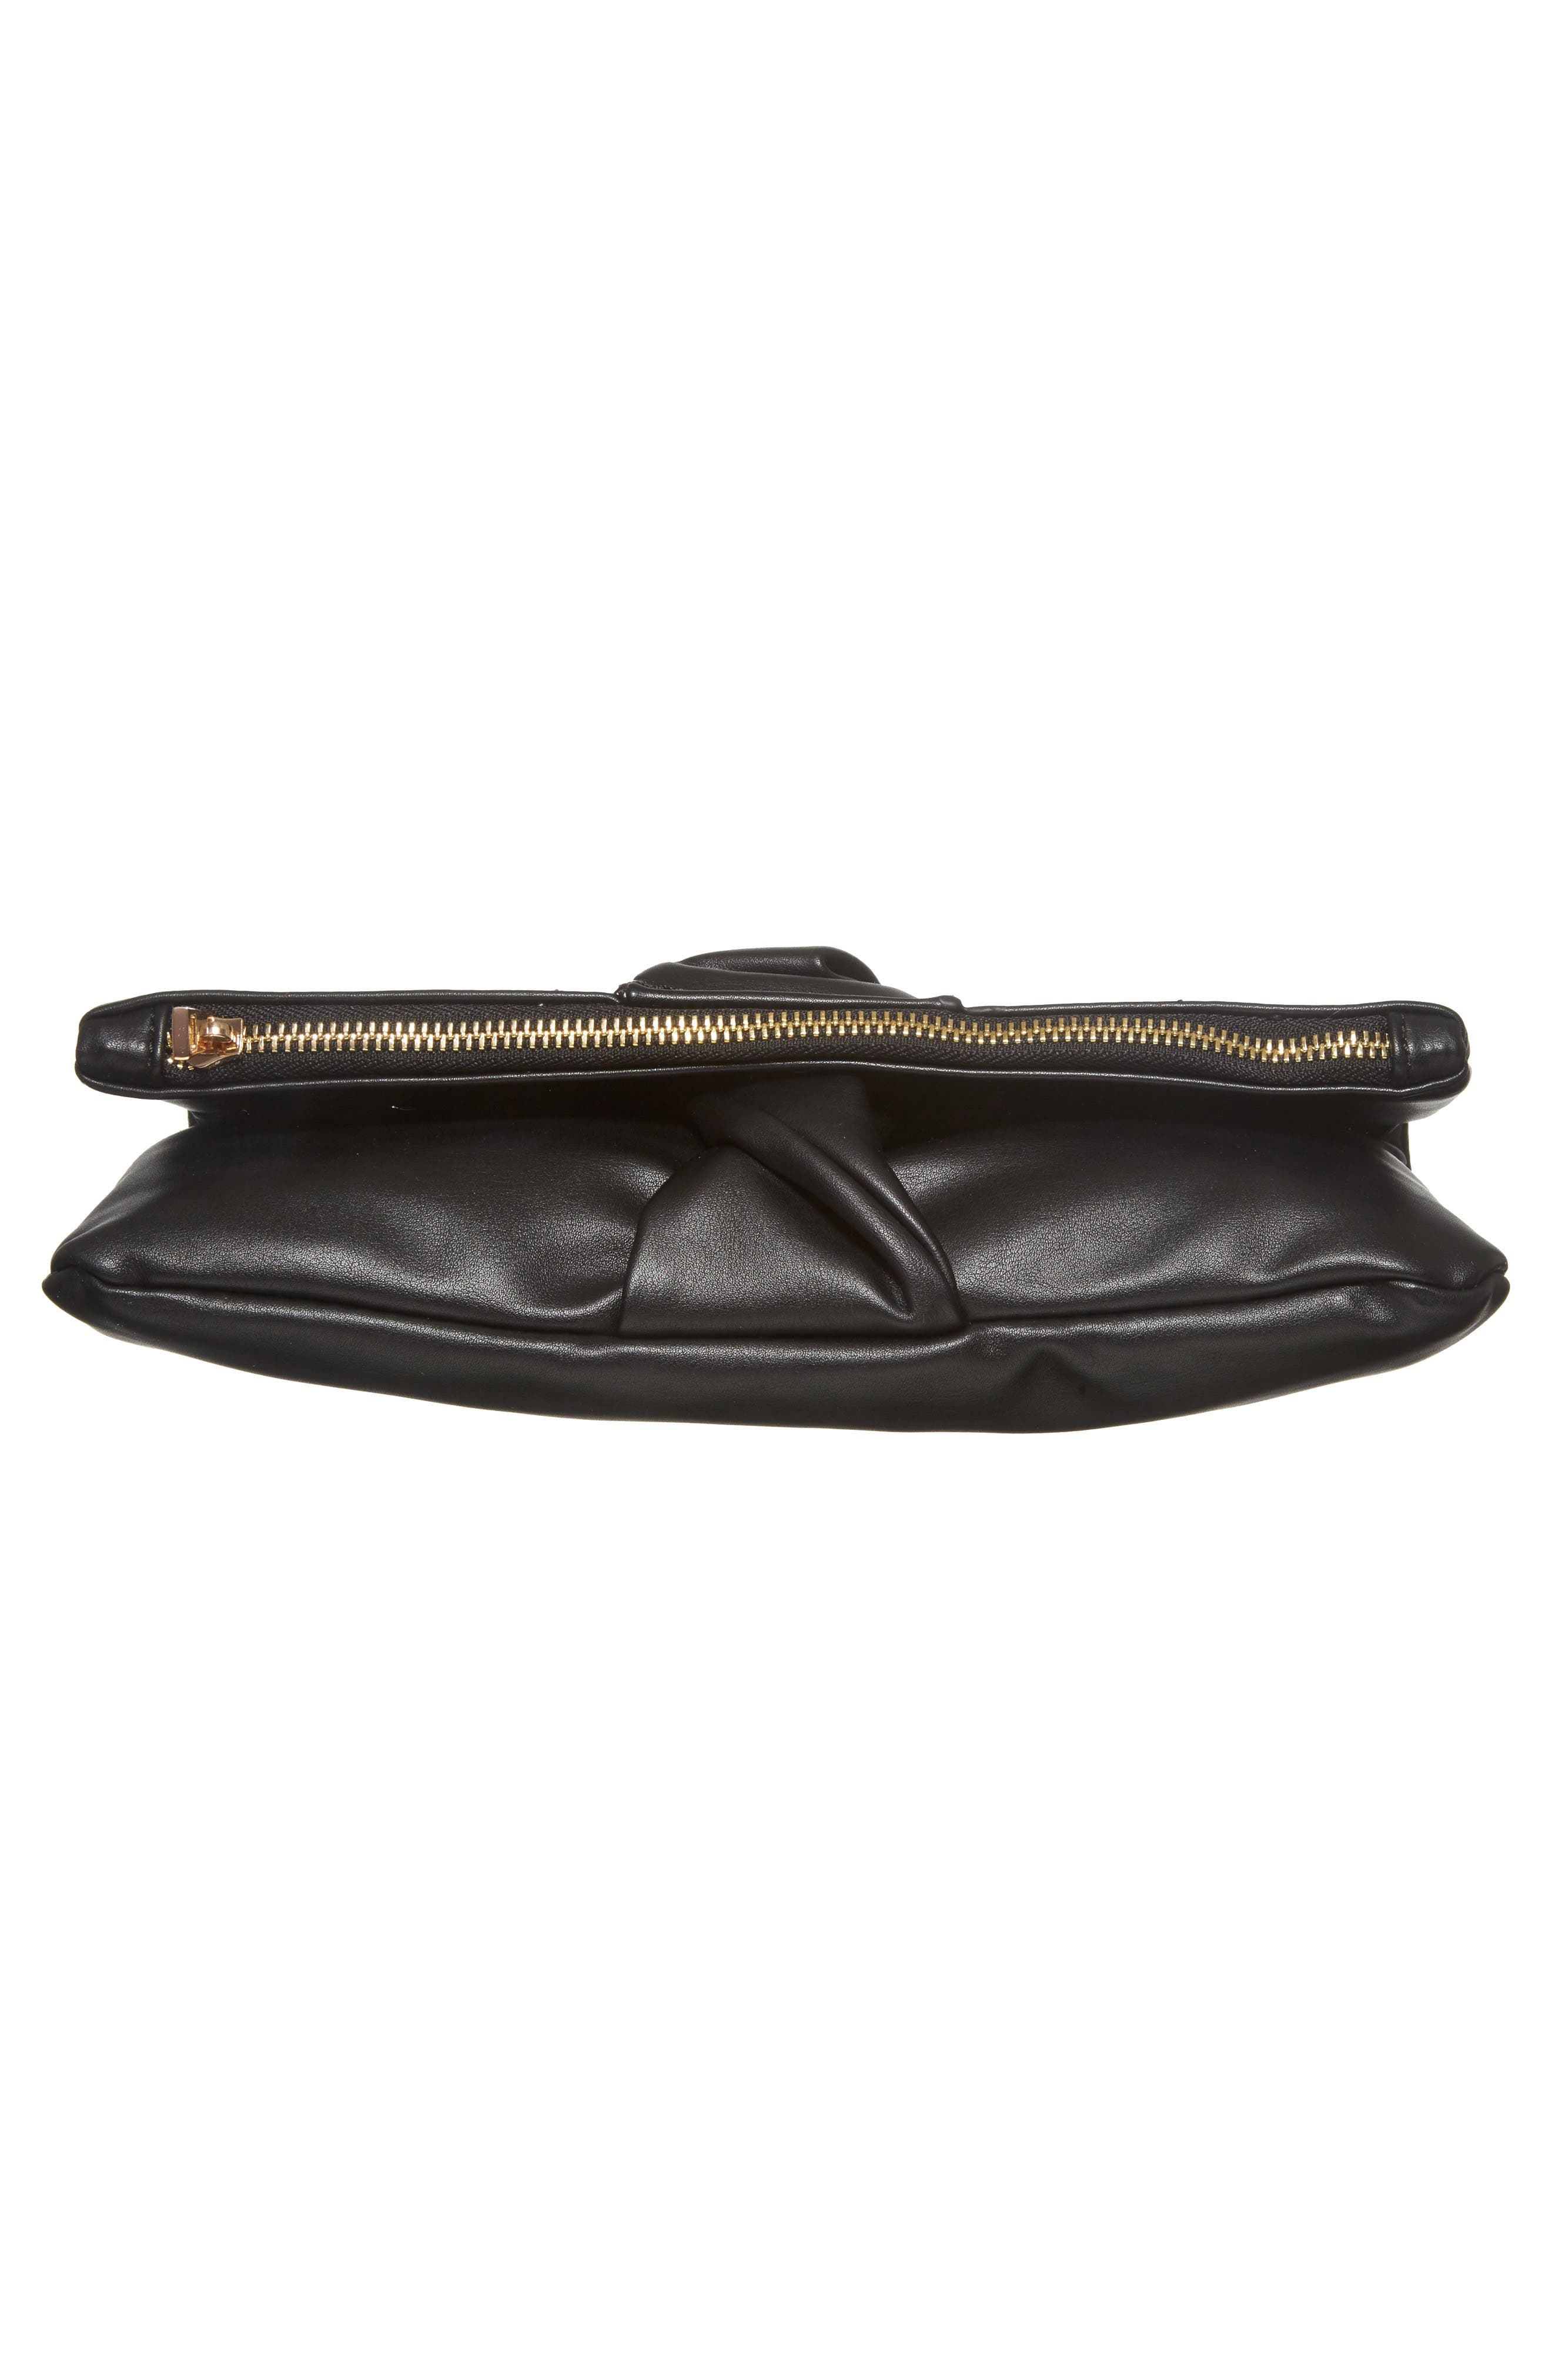 Lenore Foldover Faux Leather Clutch,                             Alternate thumbnail 6, color,                             Black